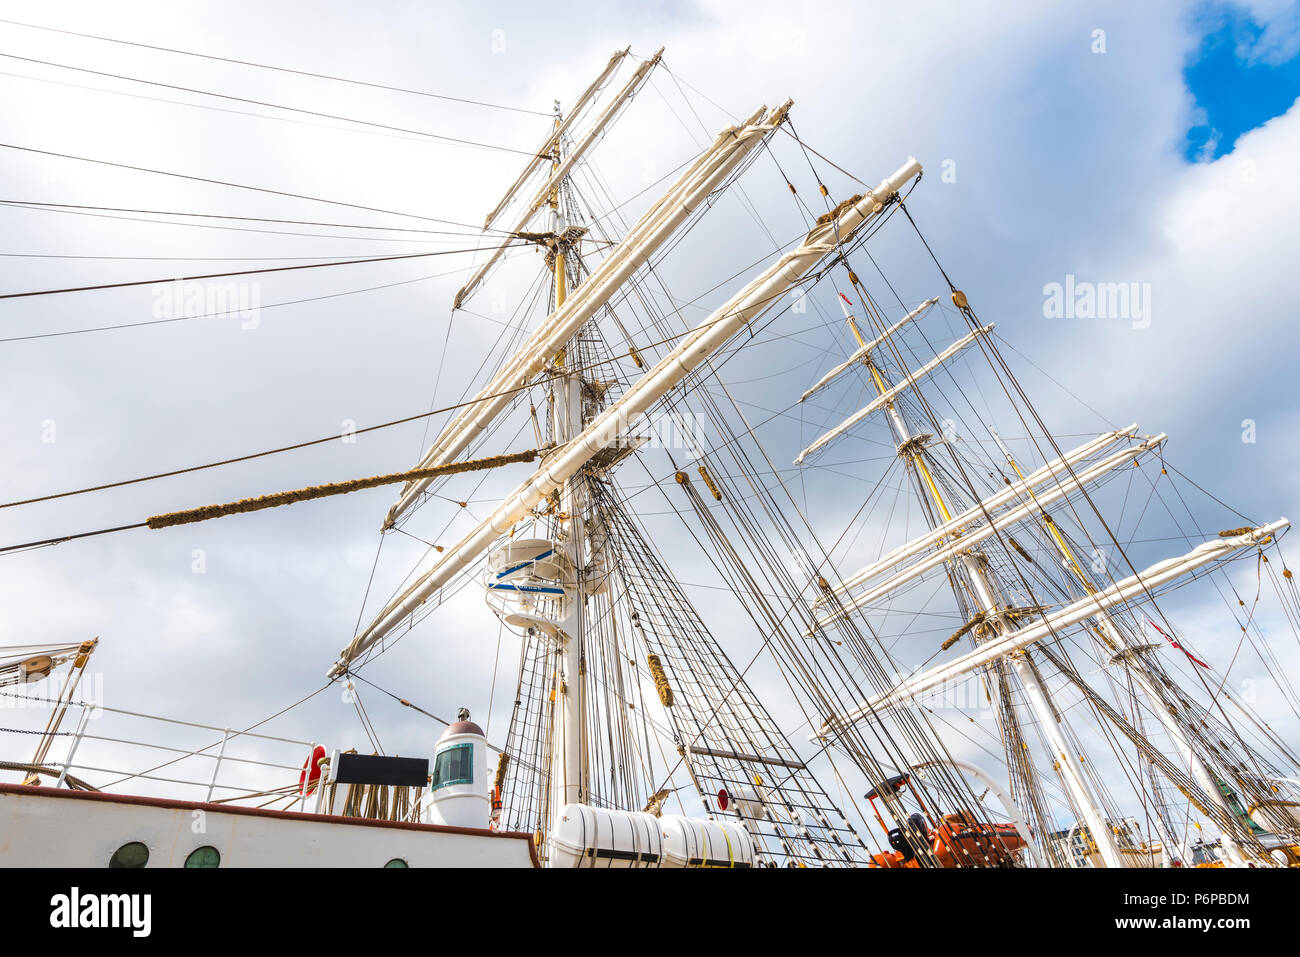 rigging of sailing ship, town Bergen, Norway - Stock Image